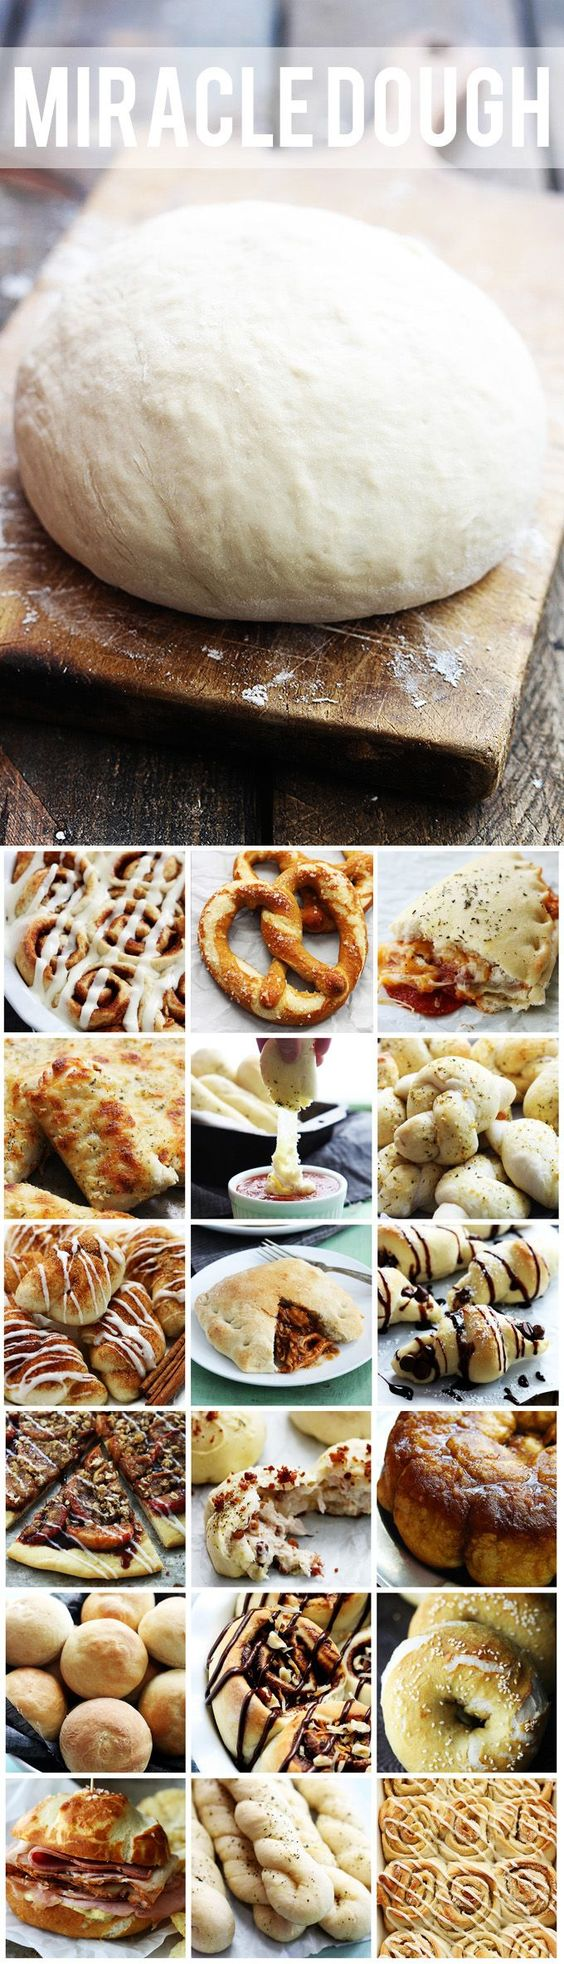 Miracle Dough - just 5 ingredients and only 30 minutes prep. Use it for cinnamon rolls, pizza, soft pretzels, and so much more! One simple dough: endless possibilities!